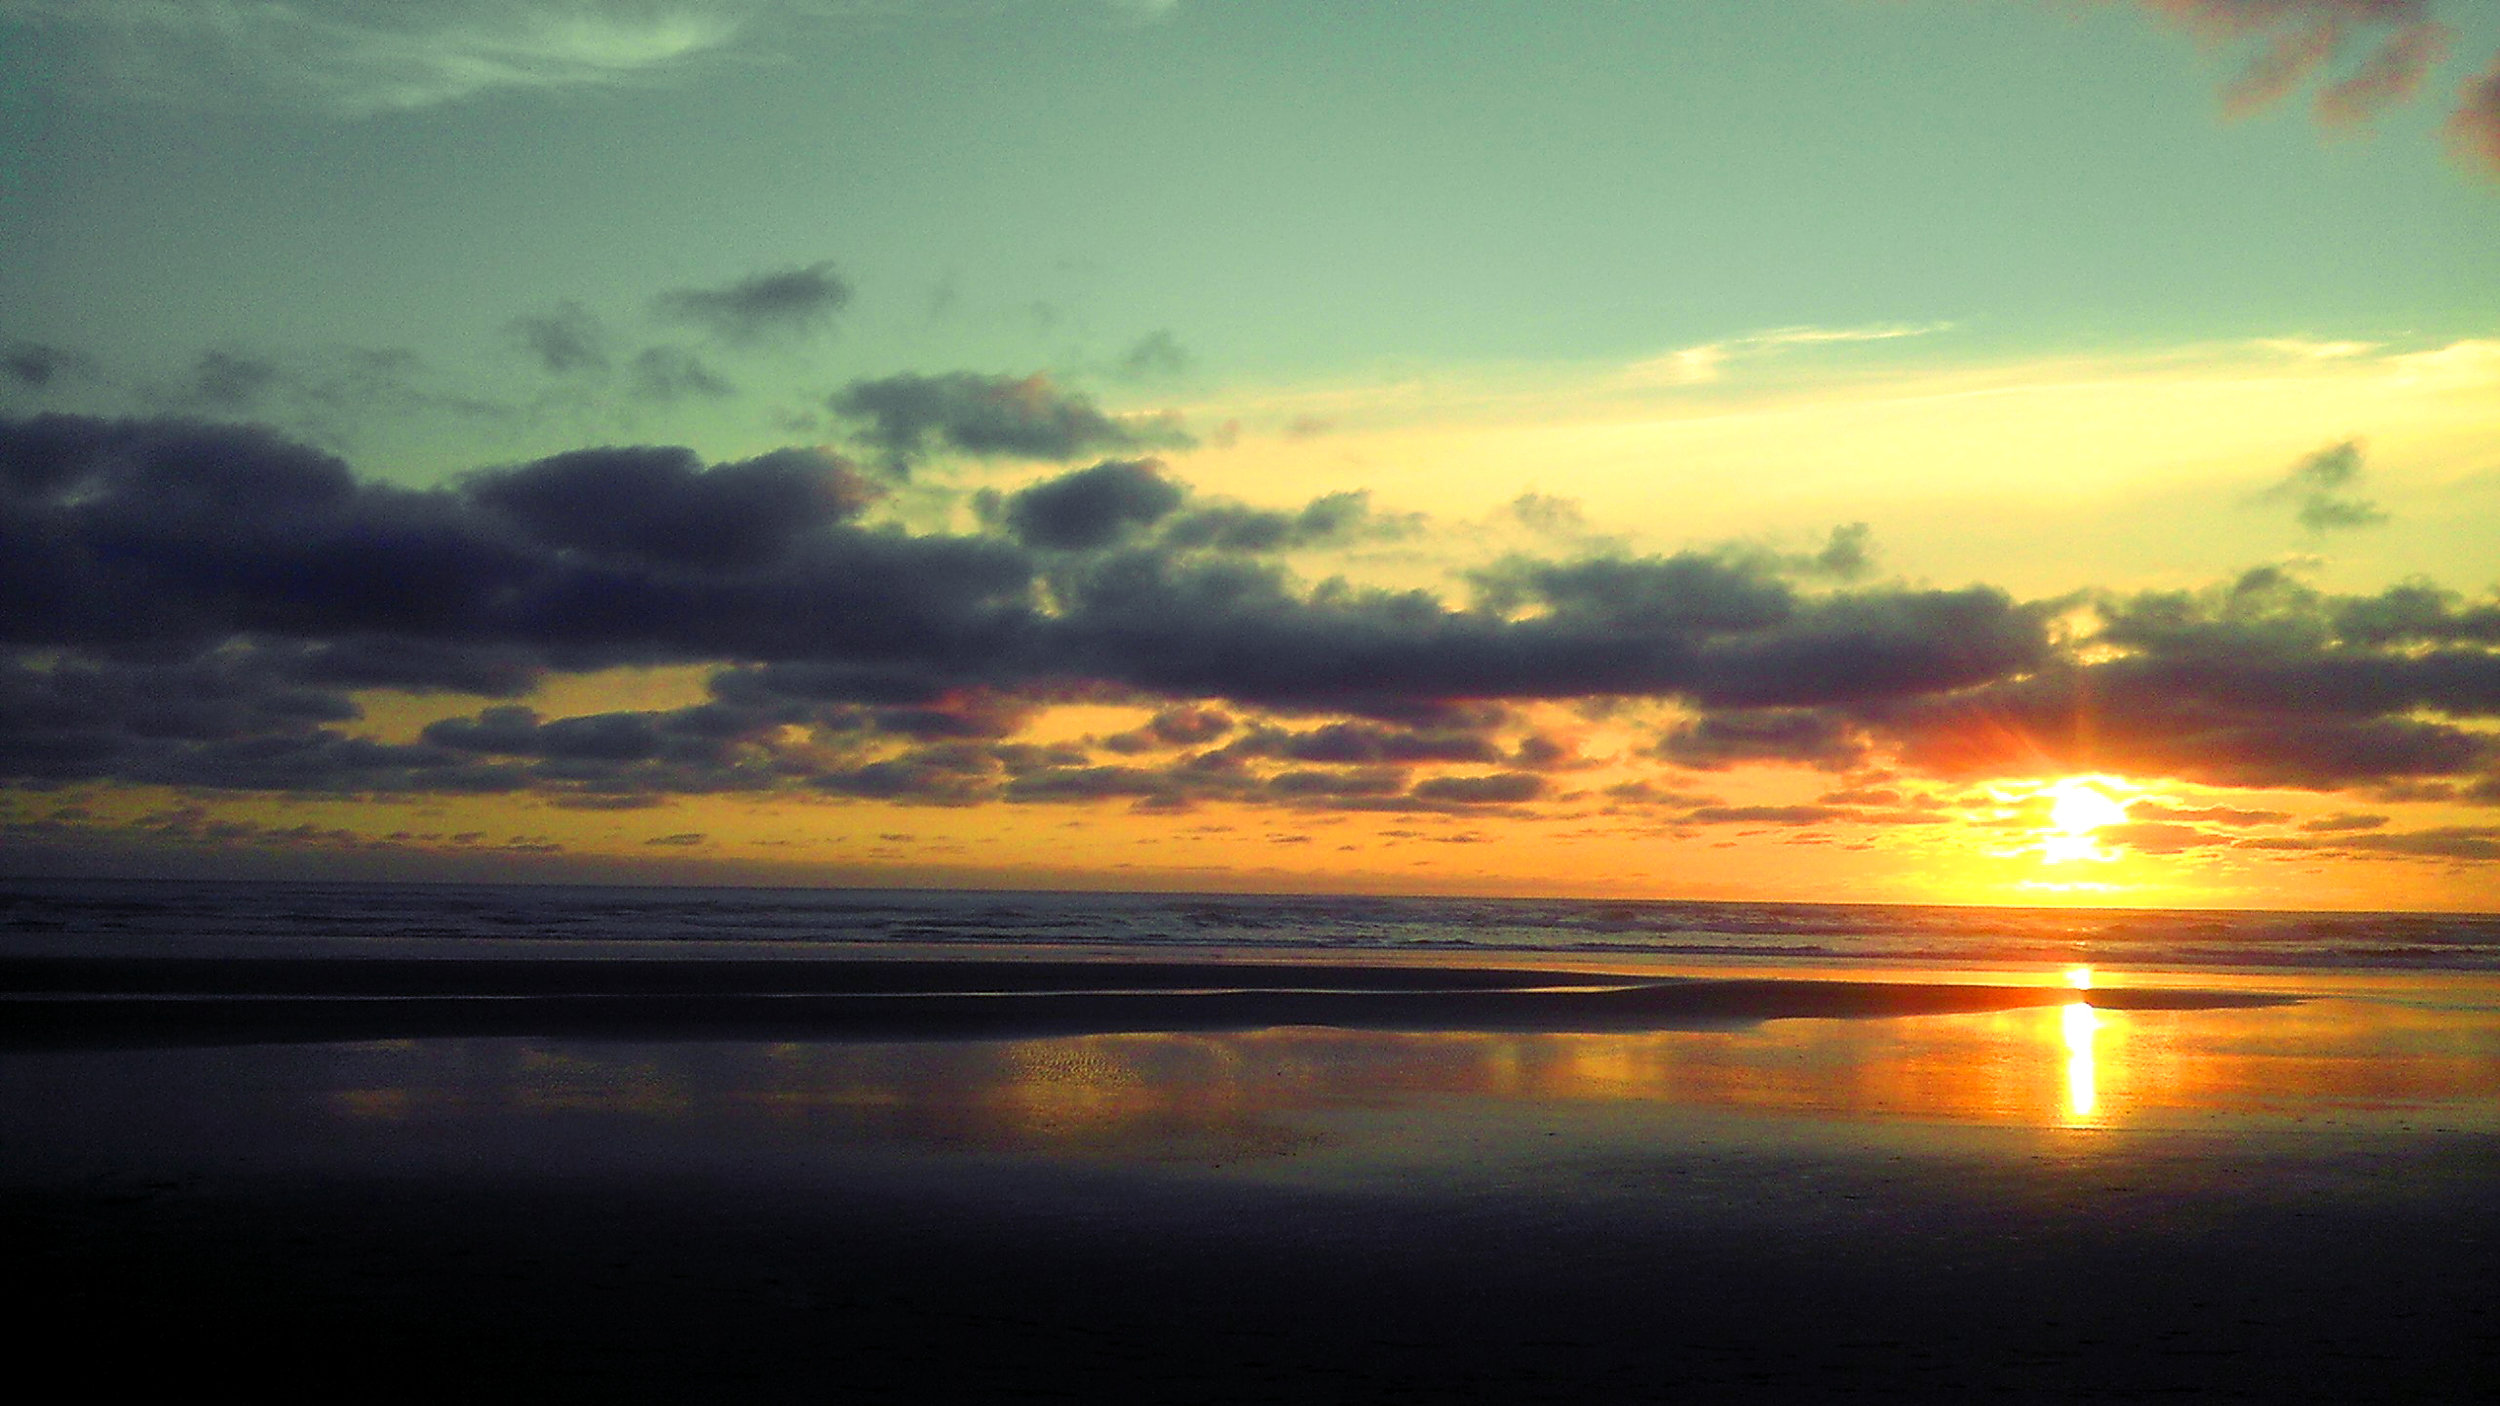 cannon beach, oregon, sunset, road trip, adventure, travel, beach